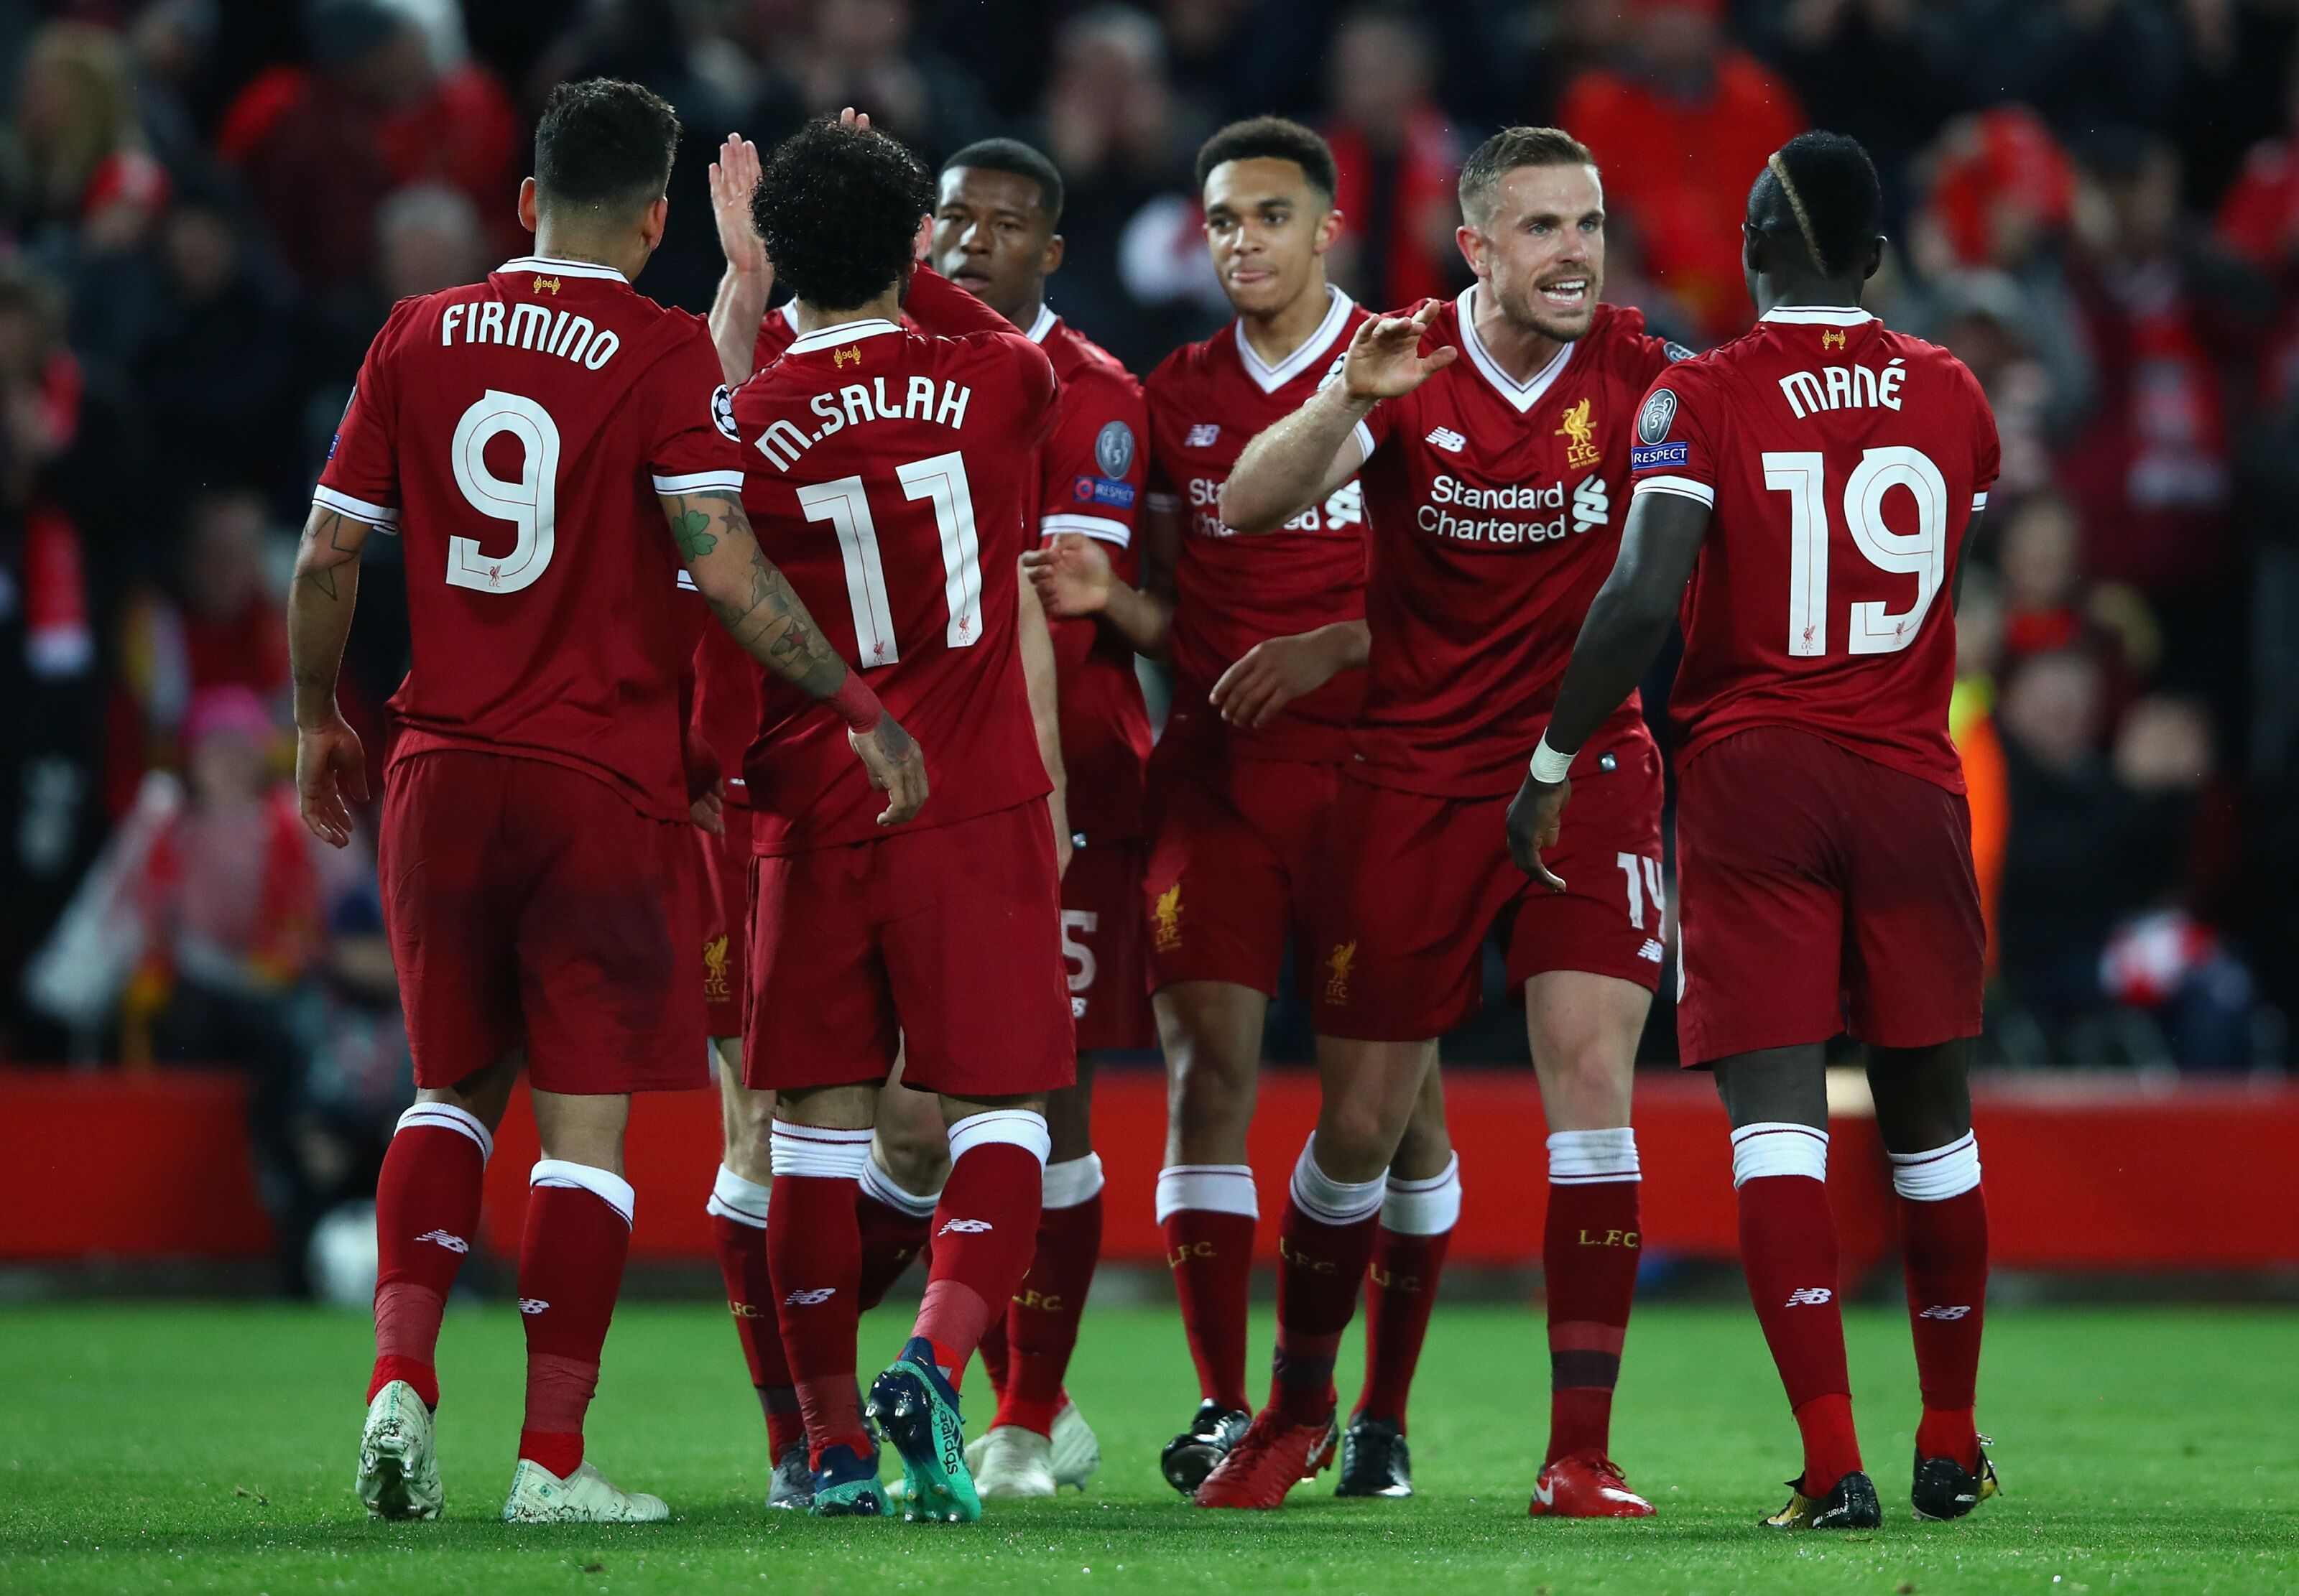 Liverpool: The Reds Can Hit New Heights Next Season